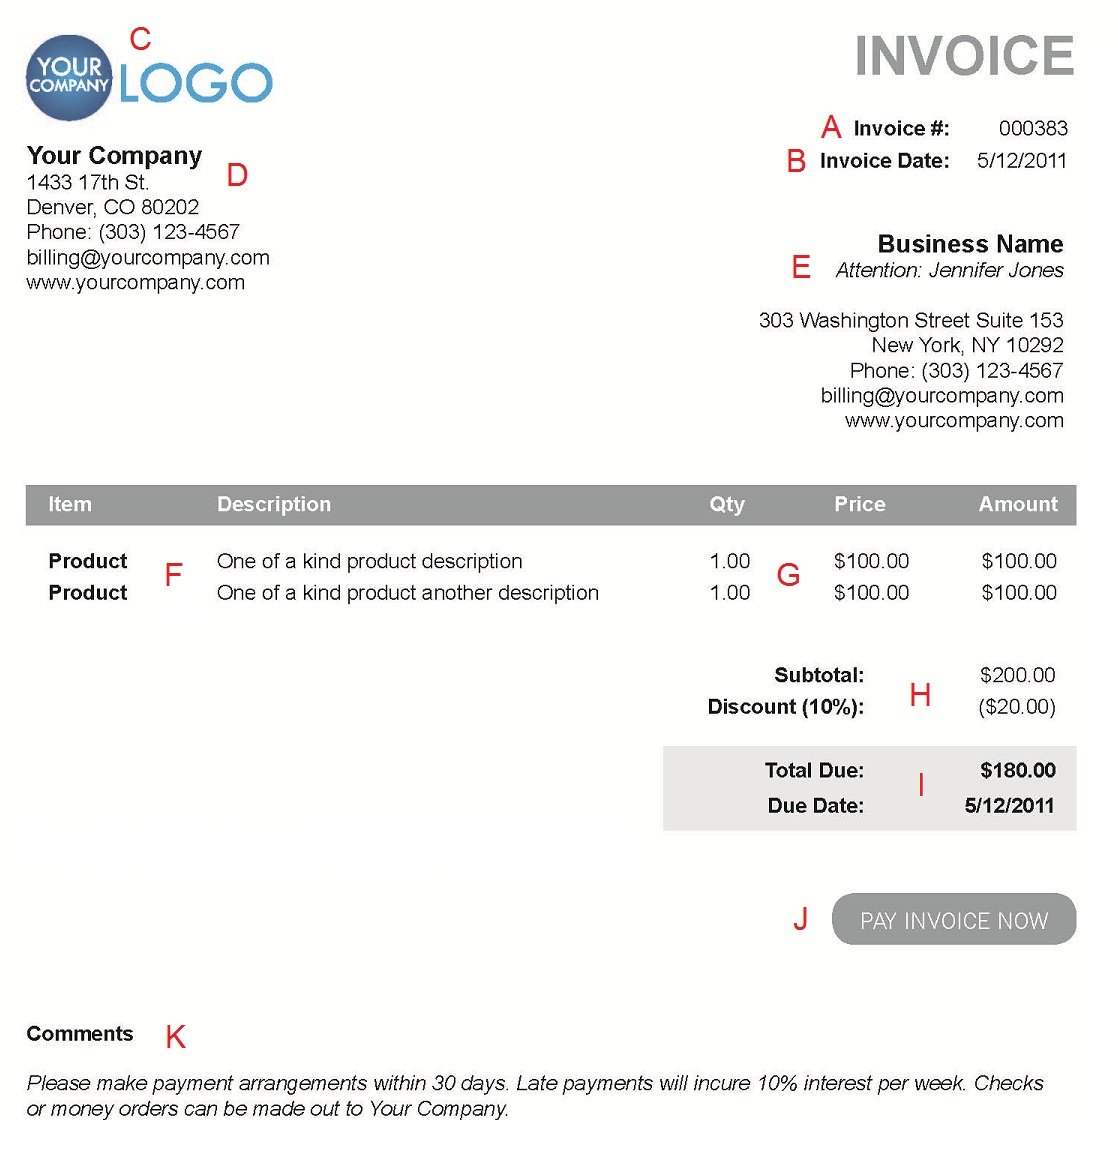 Aaaaeroincus  Stunning The  Different Sections Of An Electronic Payment Invoice With Foxy A  With Astounding Invoicing Programs Free Also Tax Invoice Sample Template In Addition Simple Invoice Creator And Commercial Invoice And Proforma Invoice As Well As Dodge Invoice Price Additionally Invoice Money From Paysimplecom With Aaaaeroincus  Foxy The  Different Sections Of An Electronic Payment Invoice With Astounding A  And Stunning Invoicing Programs Free Also Tax Invoice Sample Template In Addition Simple Invoice Creator From Paysimplecom